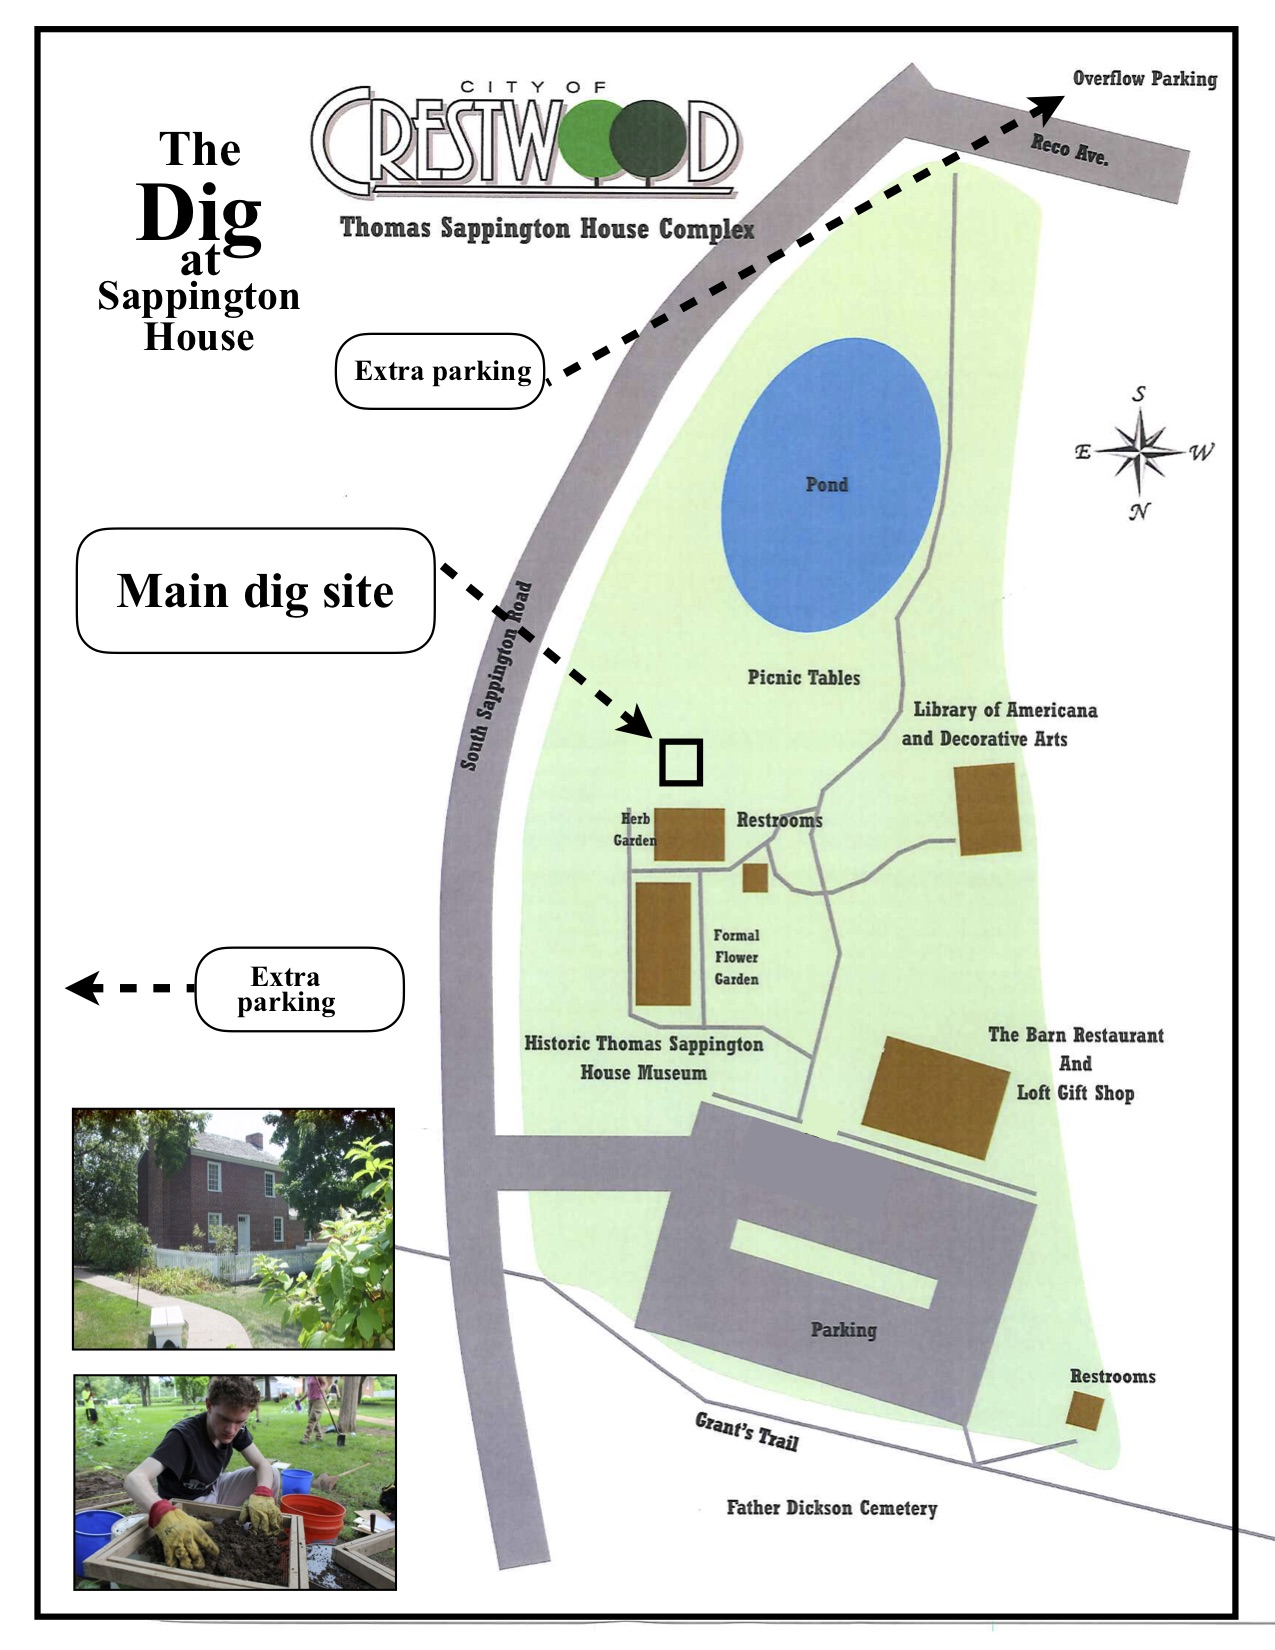 Map of Sappington House campus showing main dig site